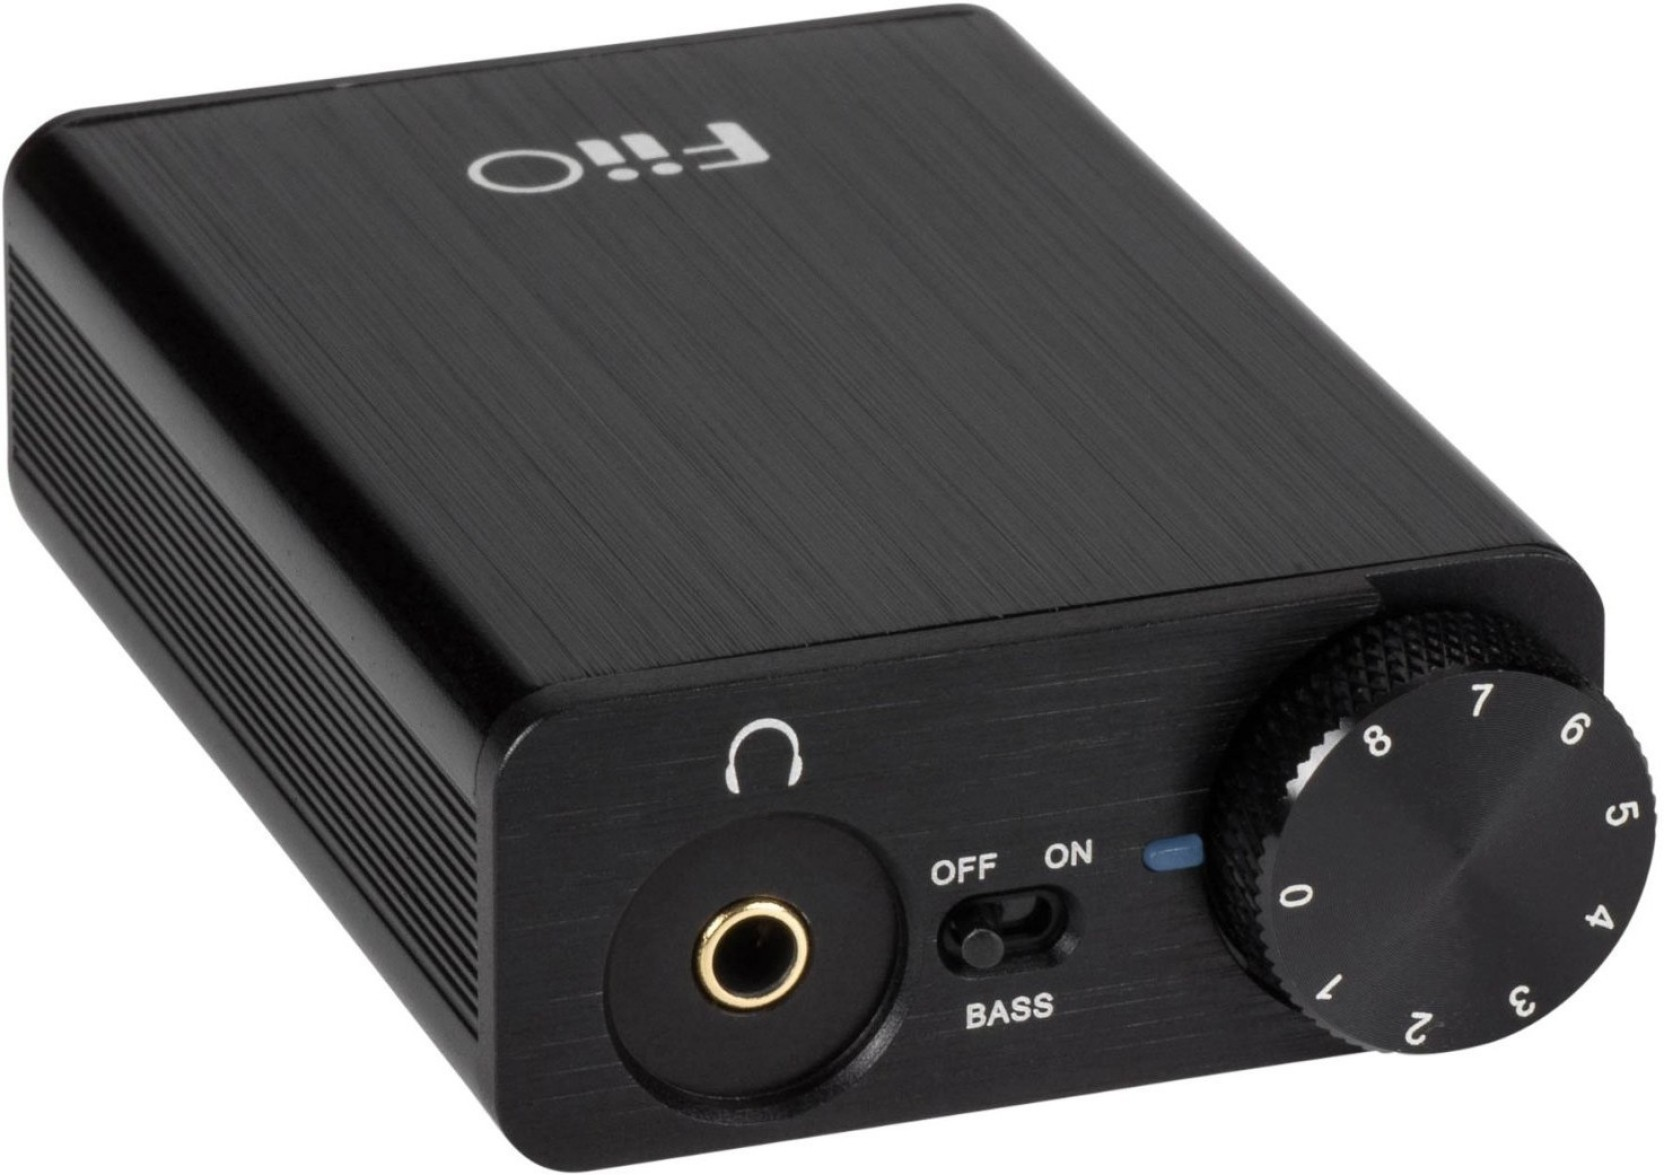 Fiio Olympus 2 E10k Desktop Dac Convertor Headphone Amplifier Price Op Amp Circuit This Is An Exercise In Add To Cart